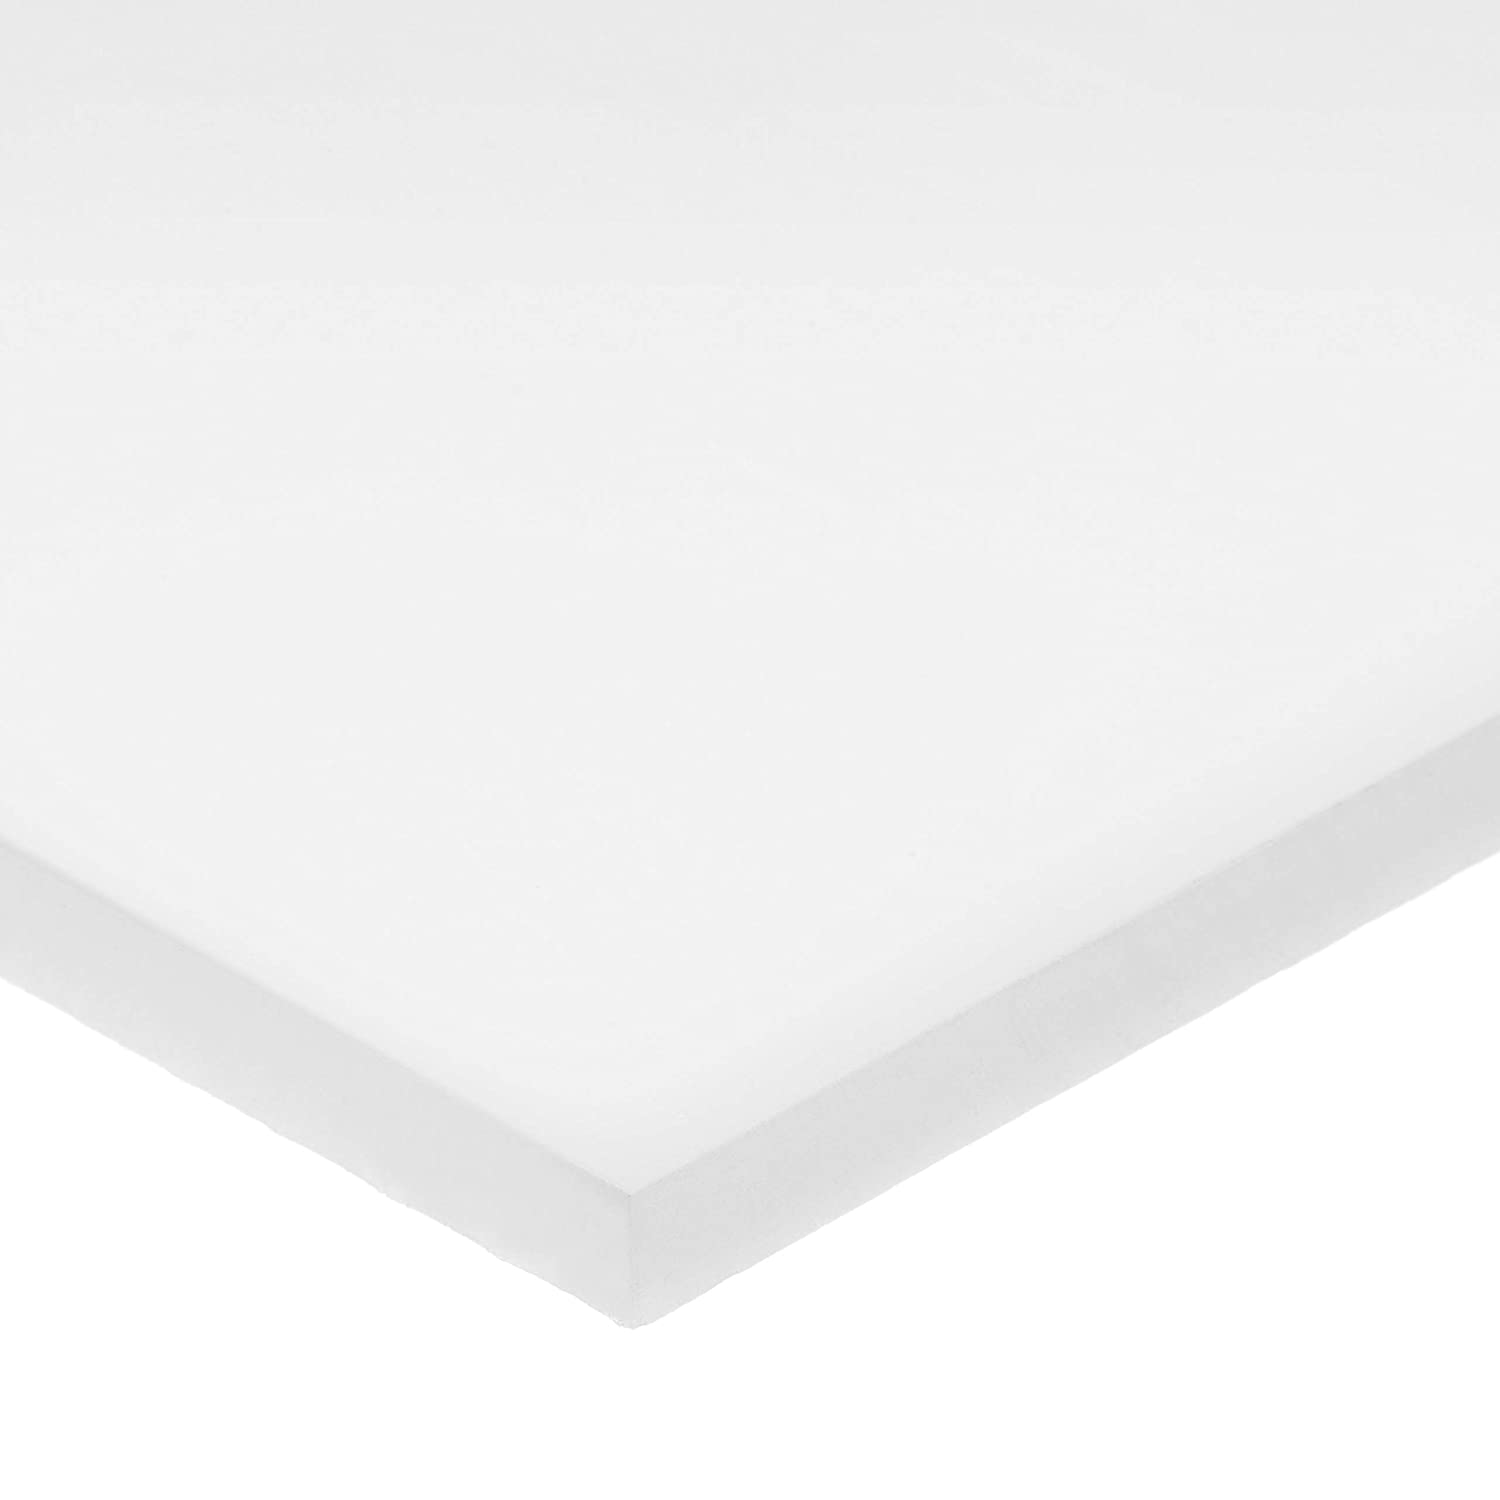 White UHMW Polyethylene Plastic Bar Free shipping New - 3 Thick Wide x Fort Worth Mall 1-1 8